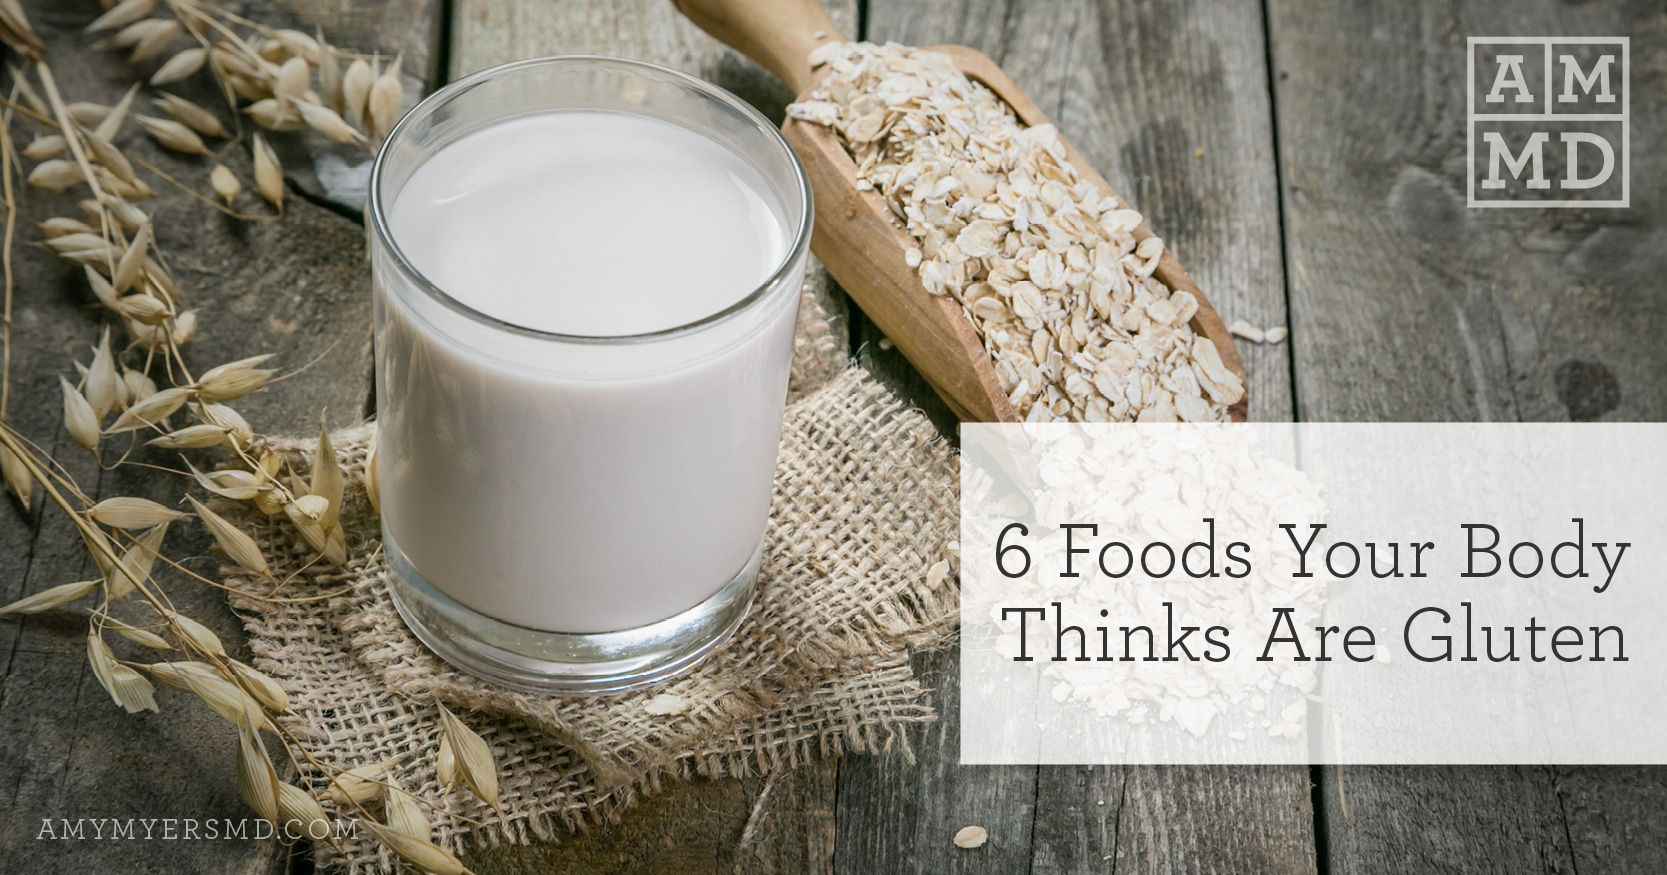 6 Foods Your Body Thinks Are Gluten - Milk and Grain - Amy Myers MD